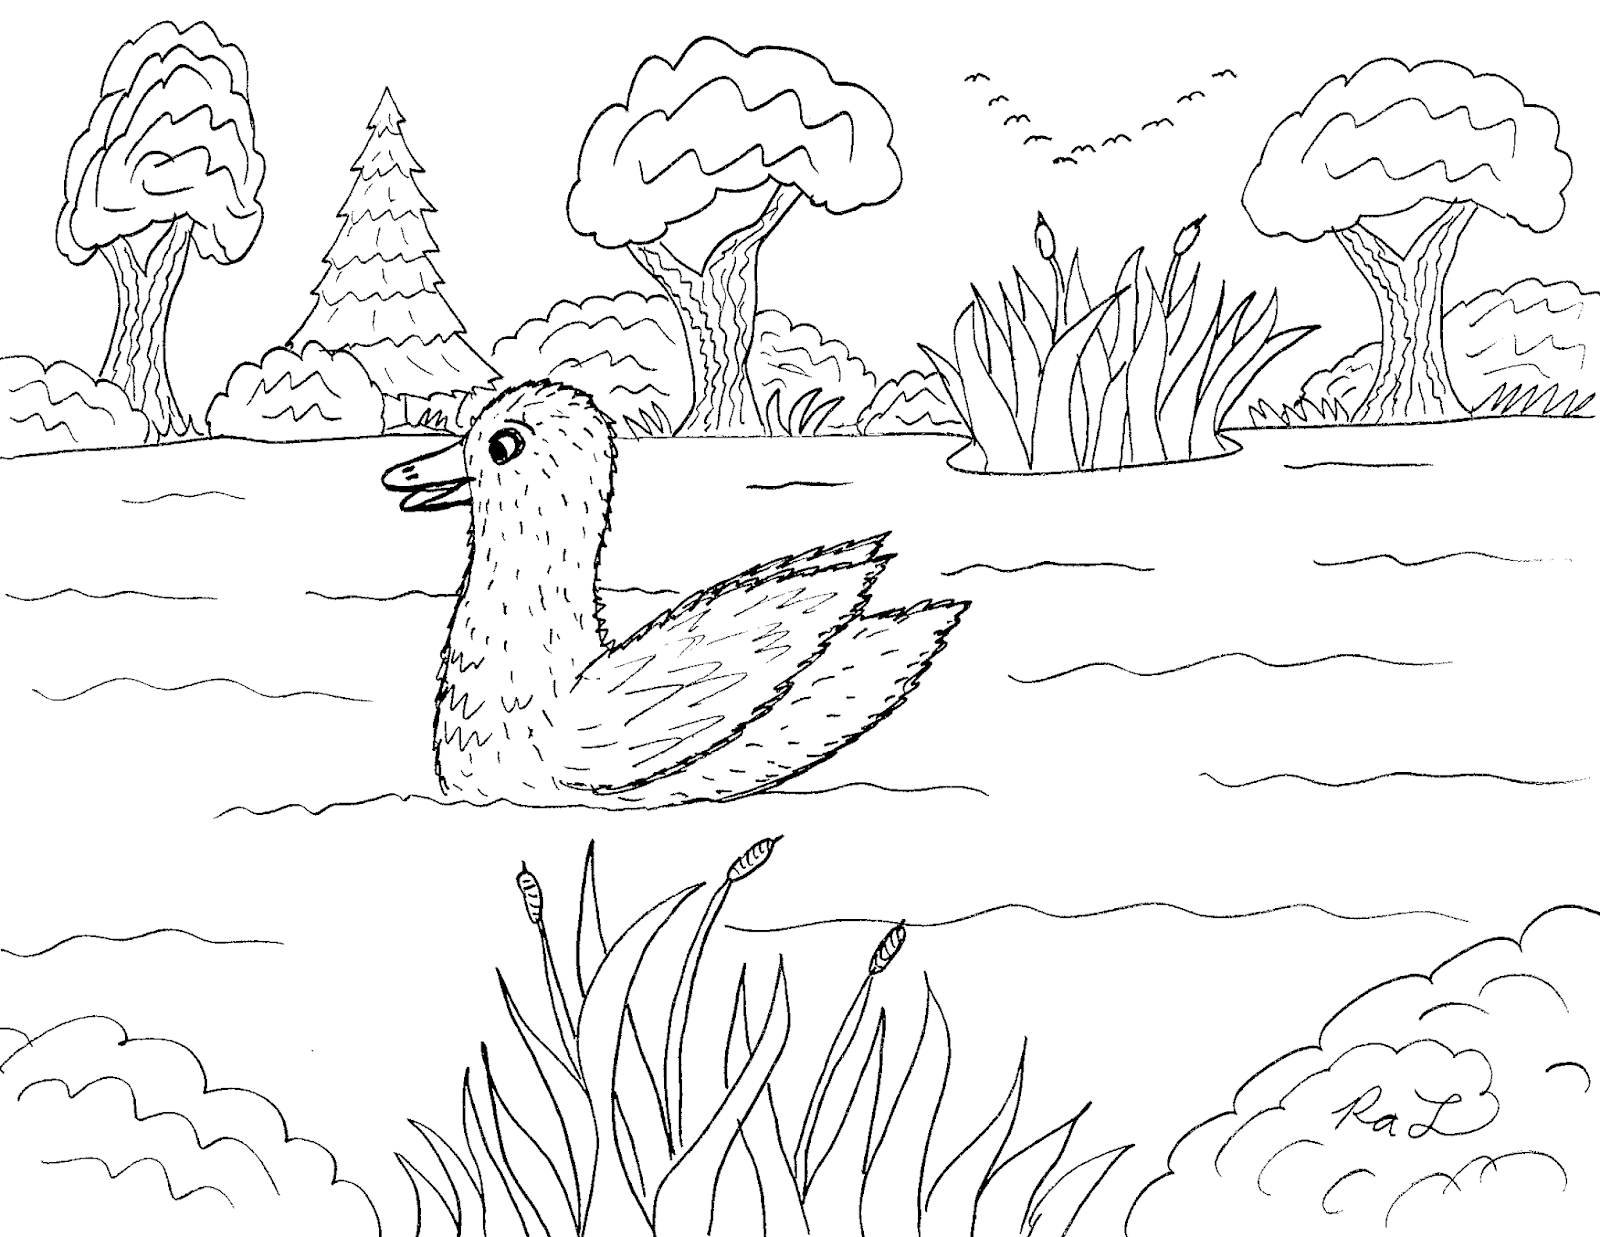 Robin S Great Coloring Pages The Ugly Duckling